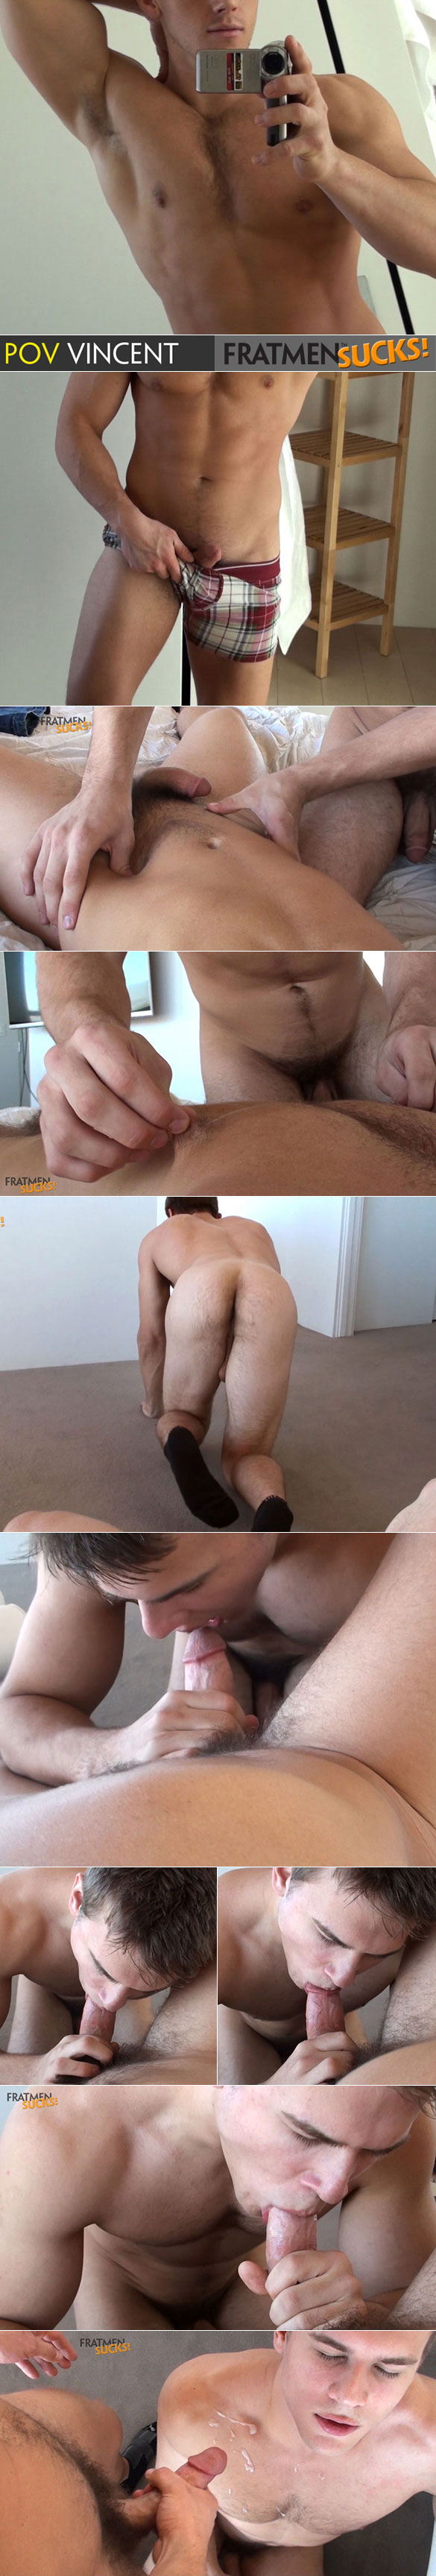 "FratmenSucks: ""POV Vincent"""